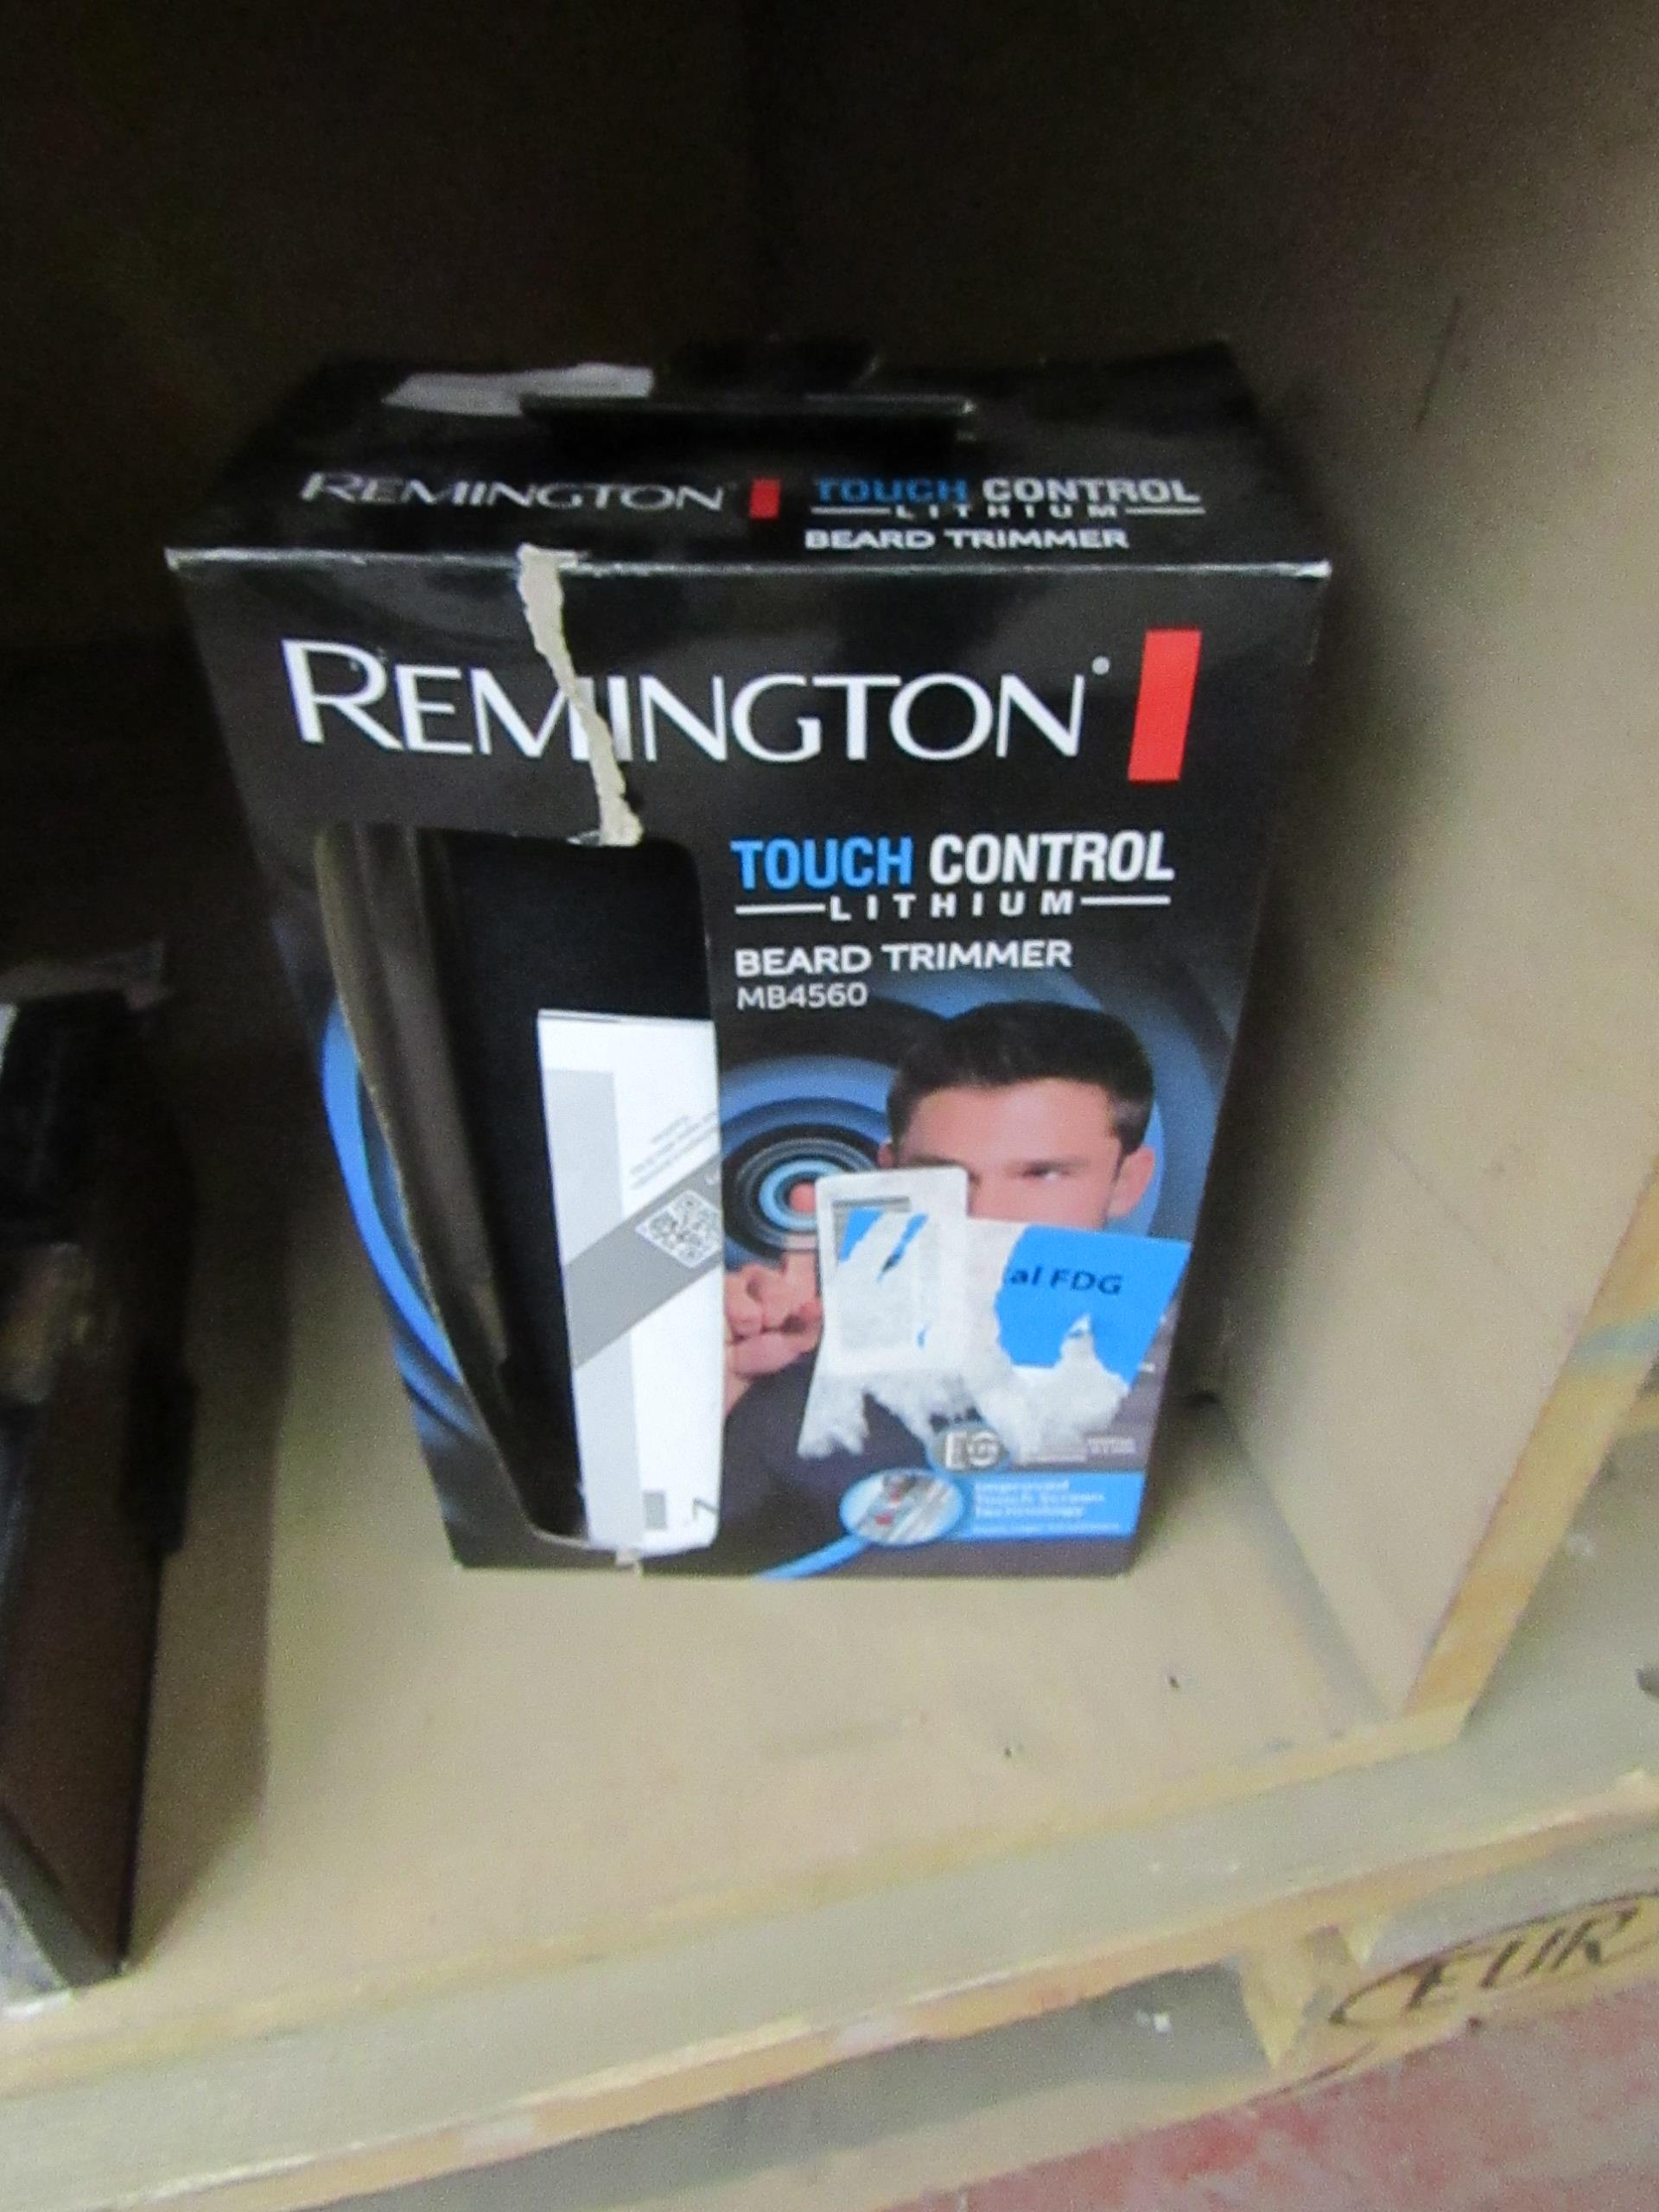 Lot 99 - Remington Touch Control beard trimmer, untested and boxed.